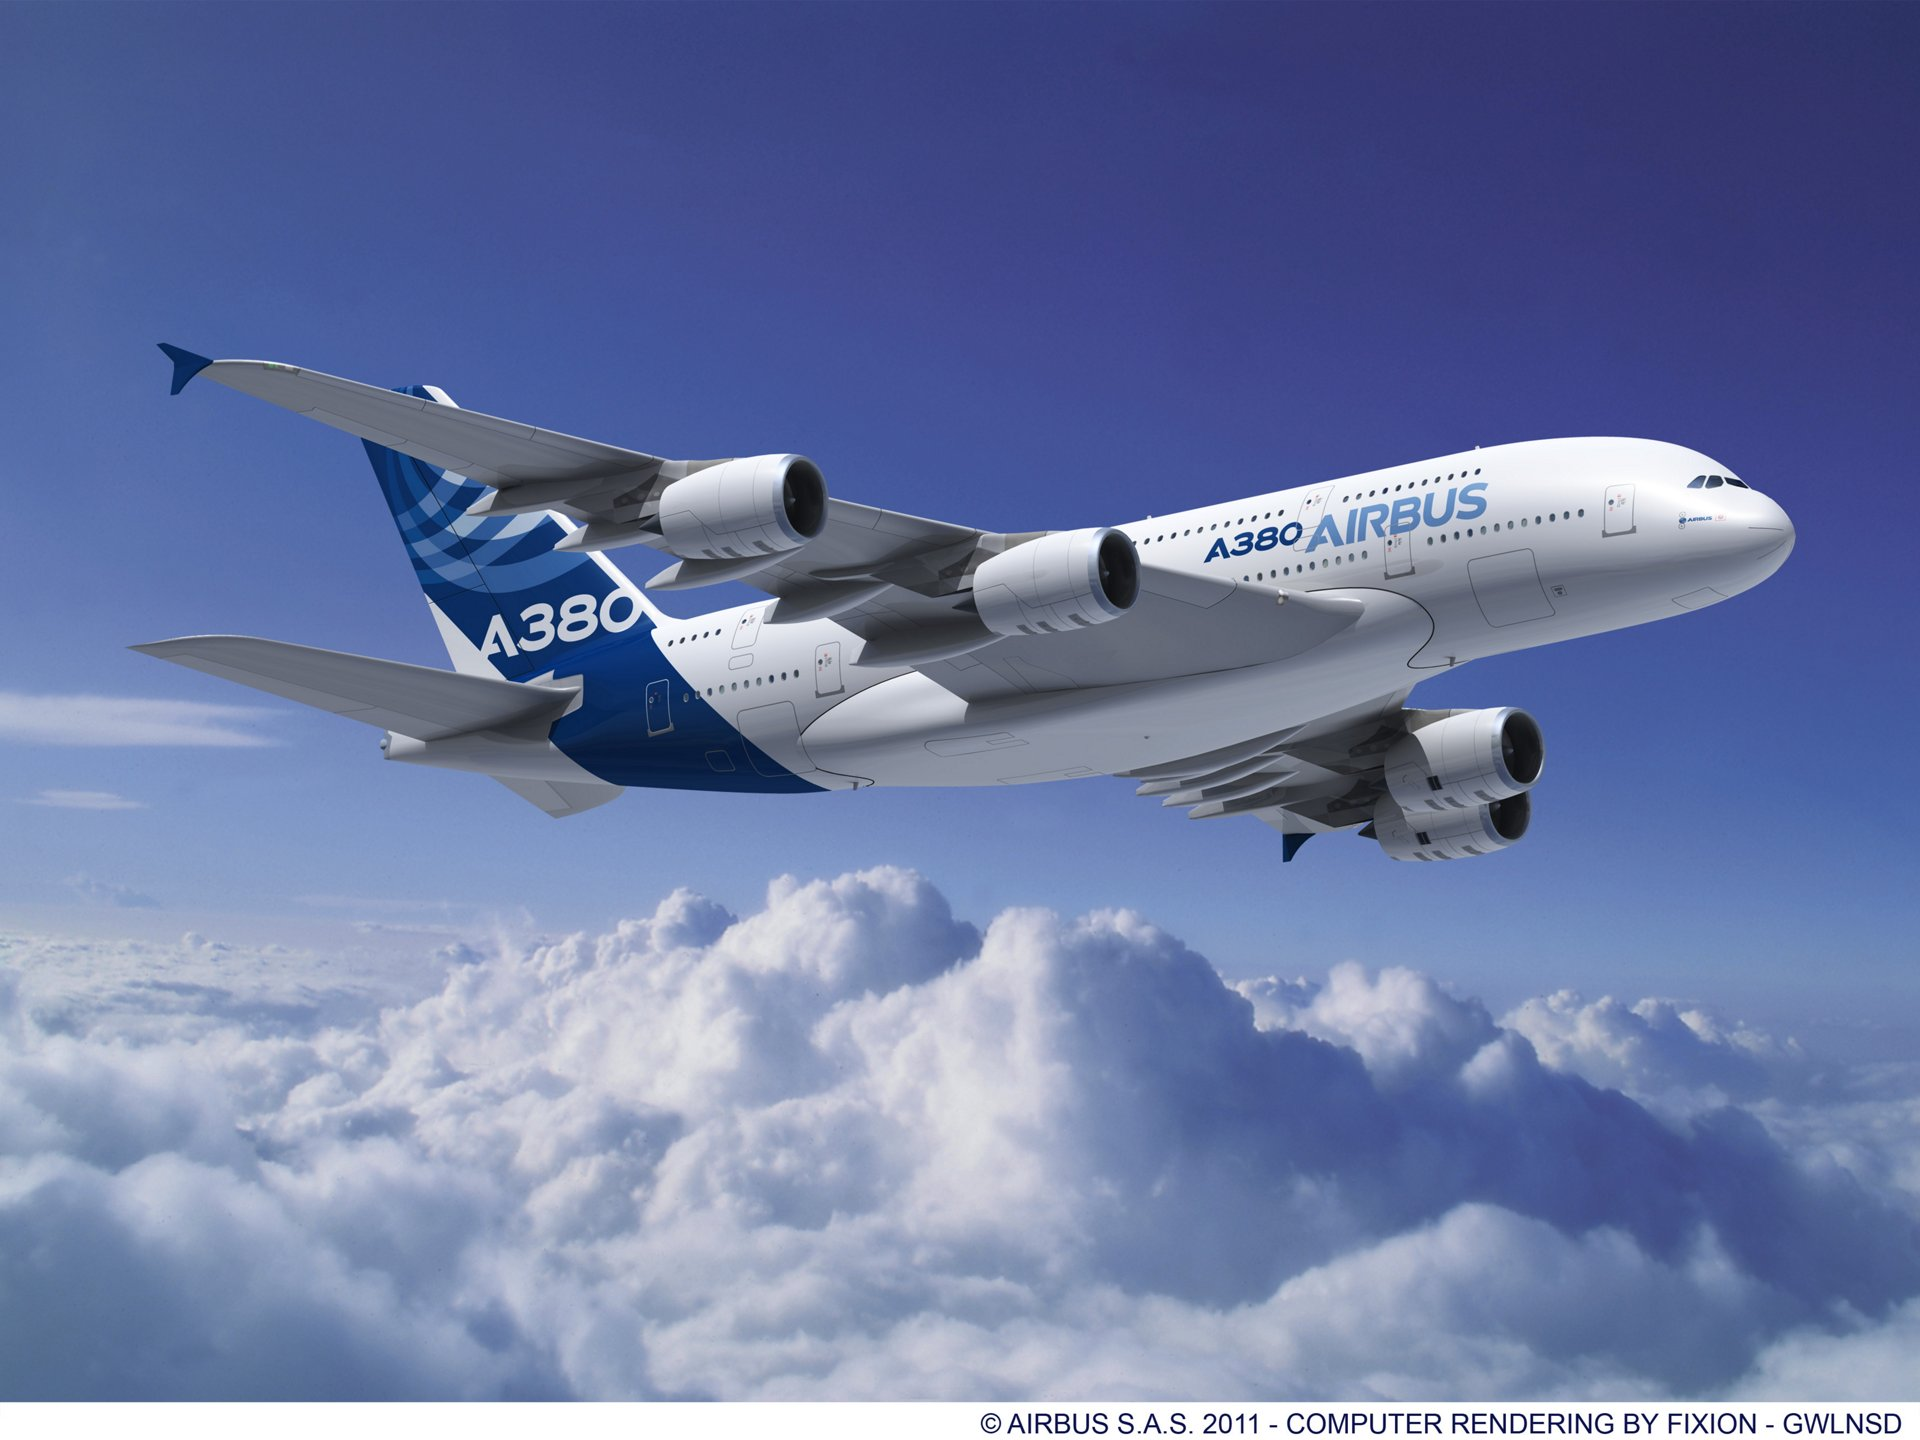 Airbus' 21st century flagship A380 – shown here outfitted with Rolls-Royce Trent 900 engines – is raising the bar for environmental standards with its low fuel consumption and noise levels, as well as reduced CO2 and NOx emissions.